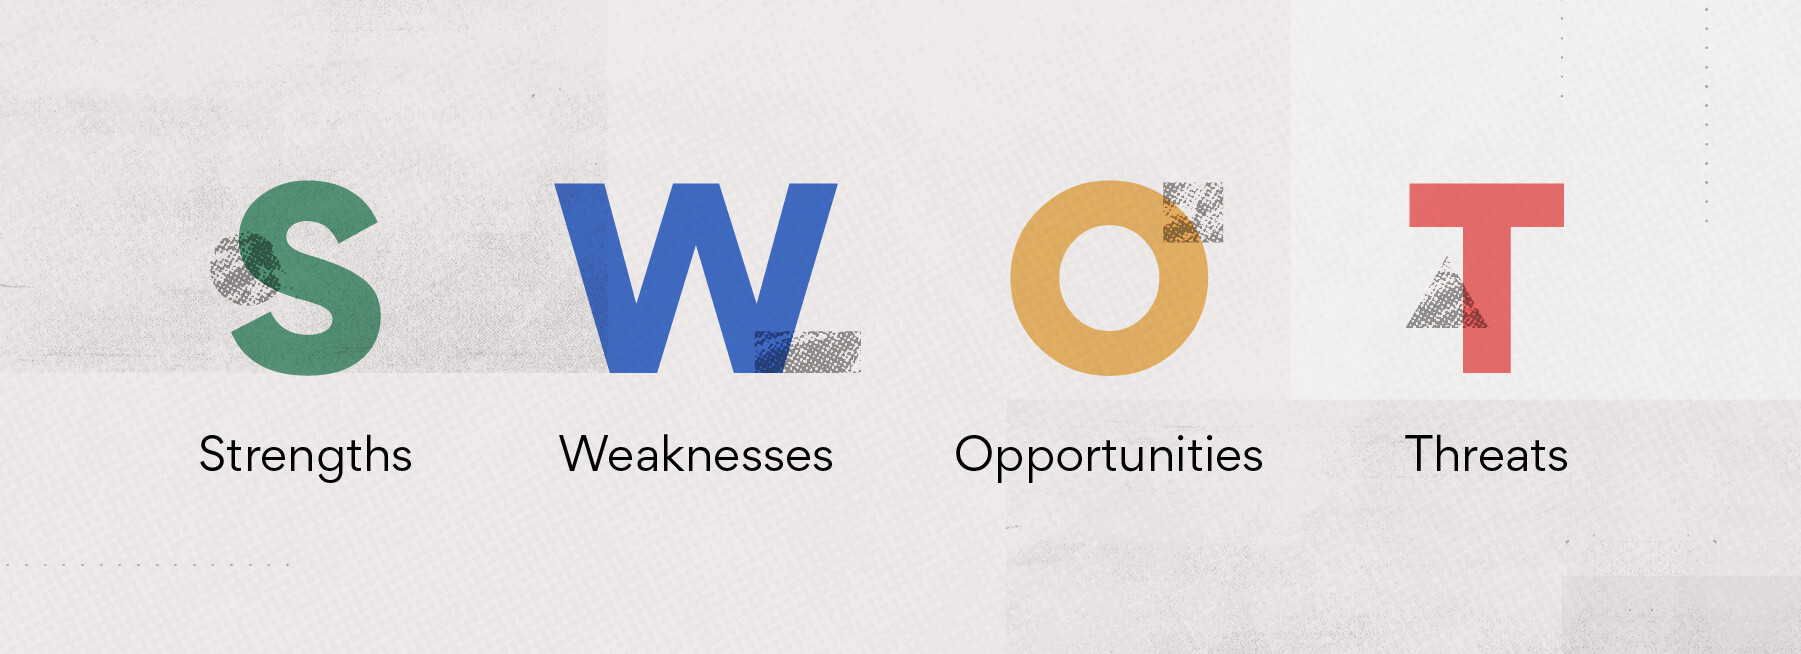 Strengths, weaknesses, opportunities, and threats